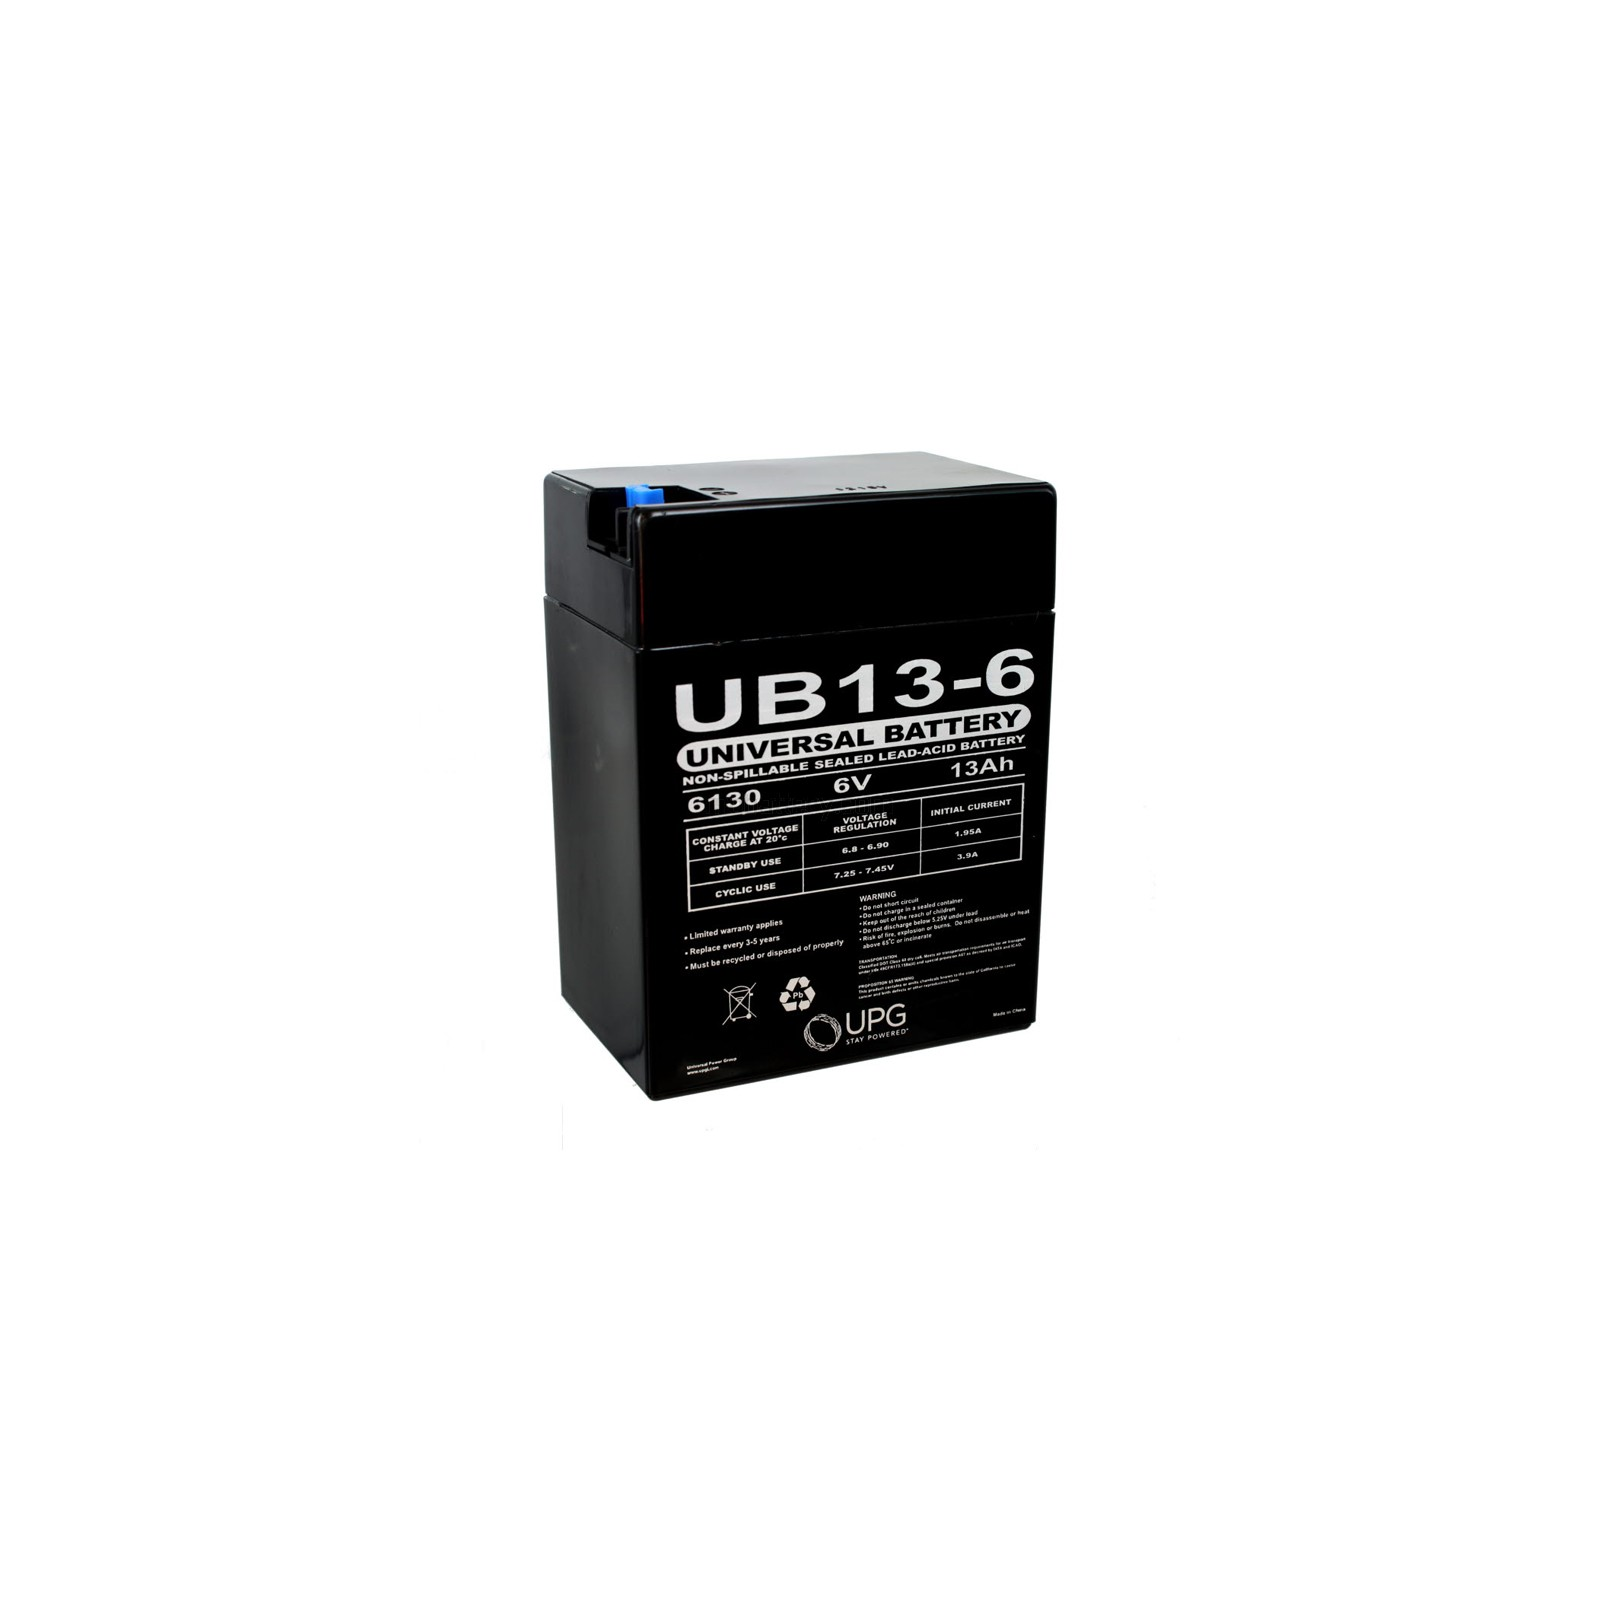 Lithonia ELM2 Compatible Replacement Battery